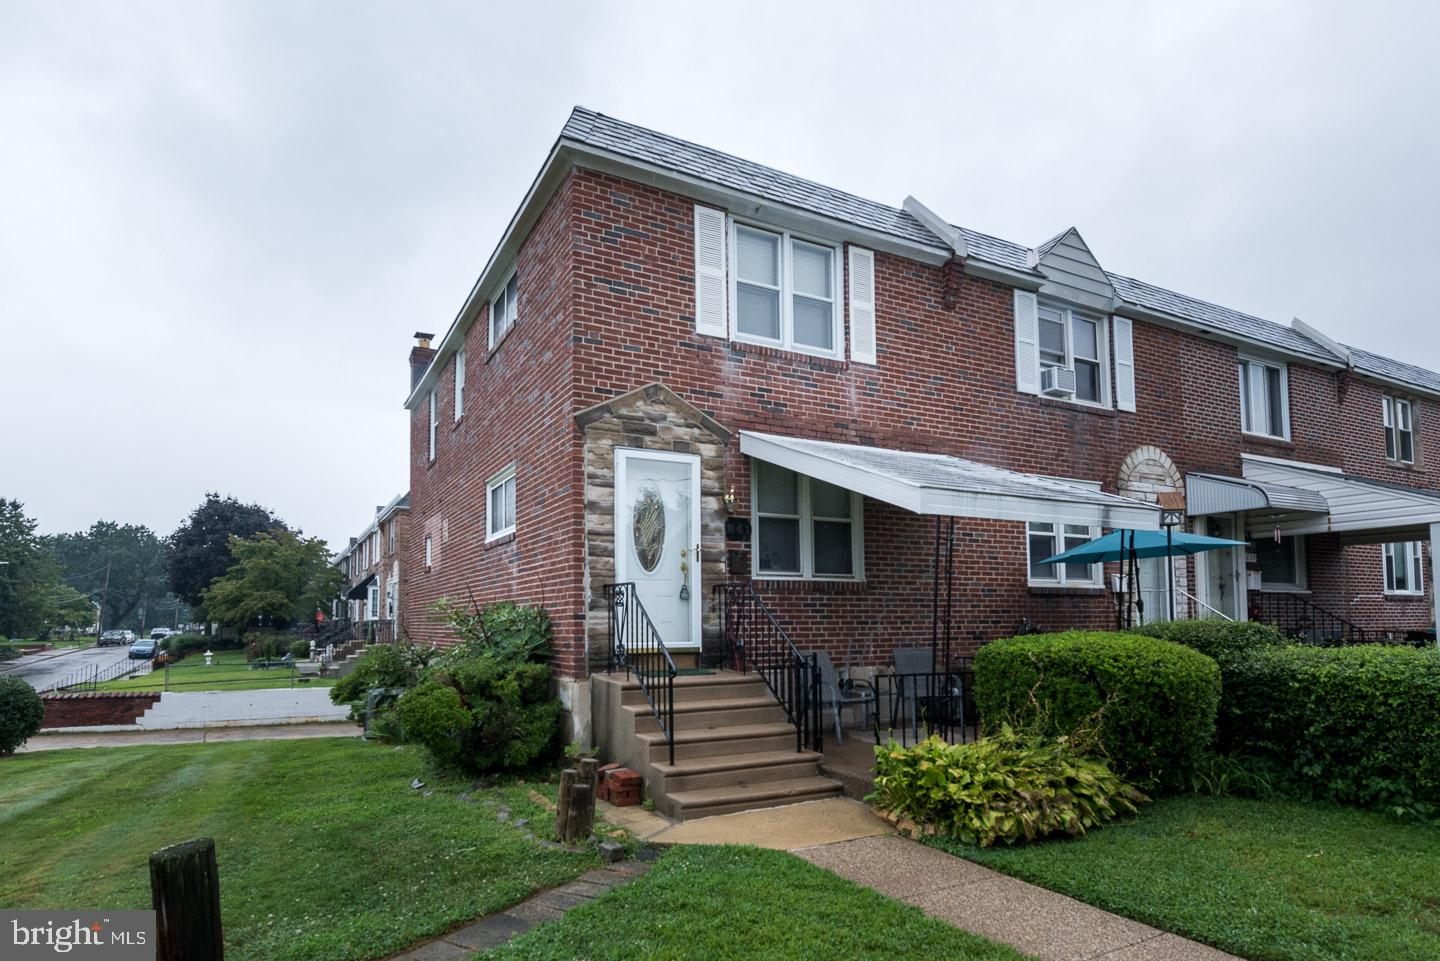 841 Hampshire Road Drexel Hill, PA 19026